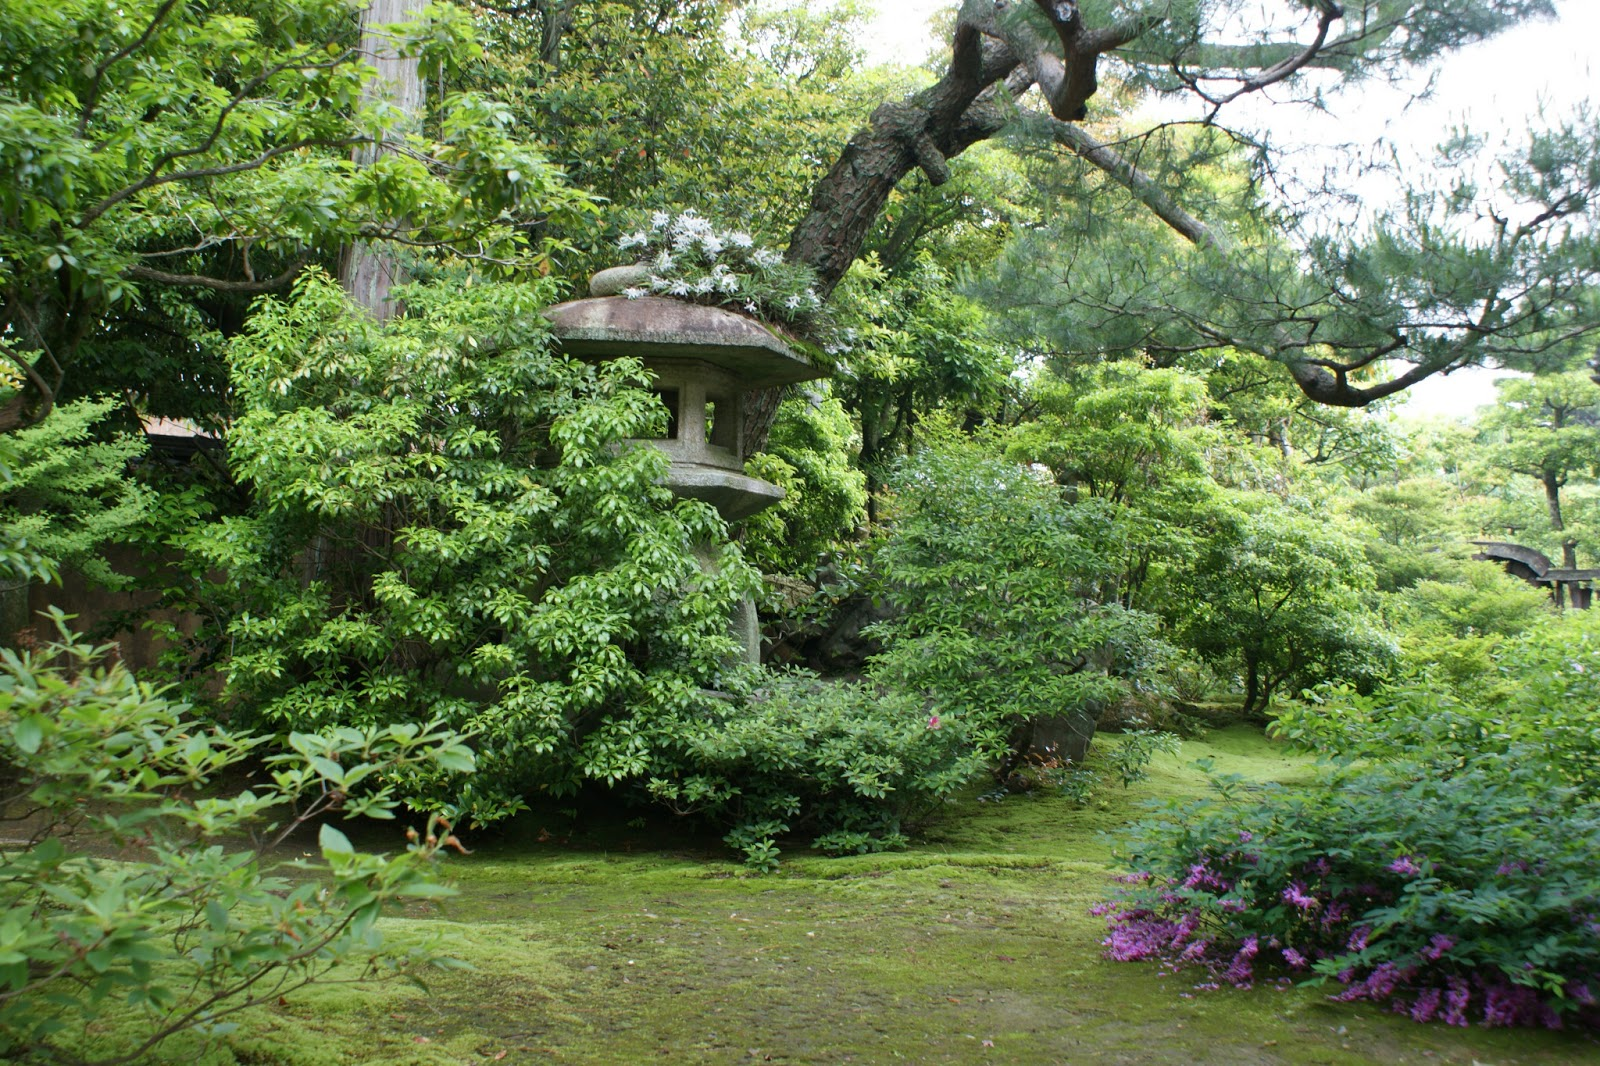 meditation in zen buddhism philosophy essay Free zen buddhism papers, essays, and research papers  the main teaching  of zen is that of zazen, or seated meditation, and that only through  1870,  received his philosophical training as a buddhist disciple at the great zen  monastery at.